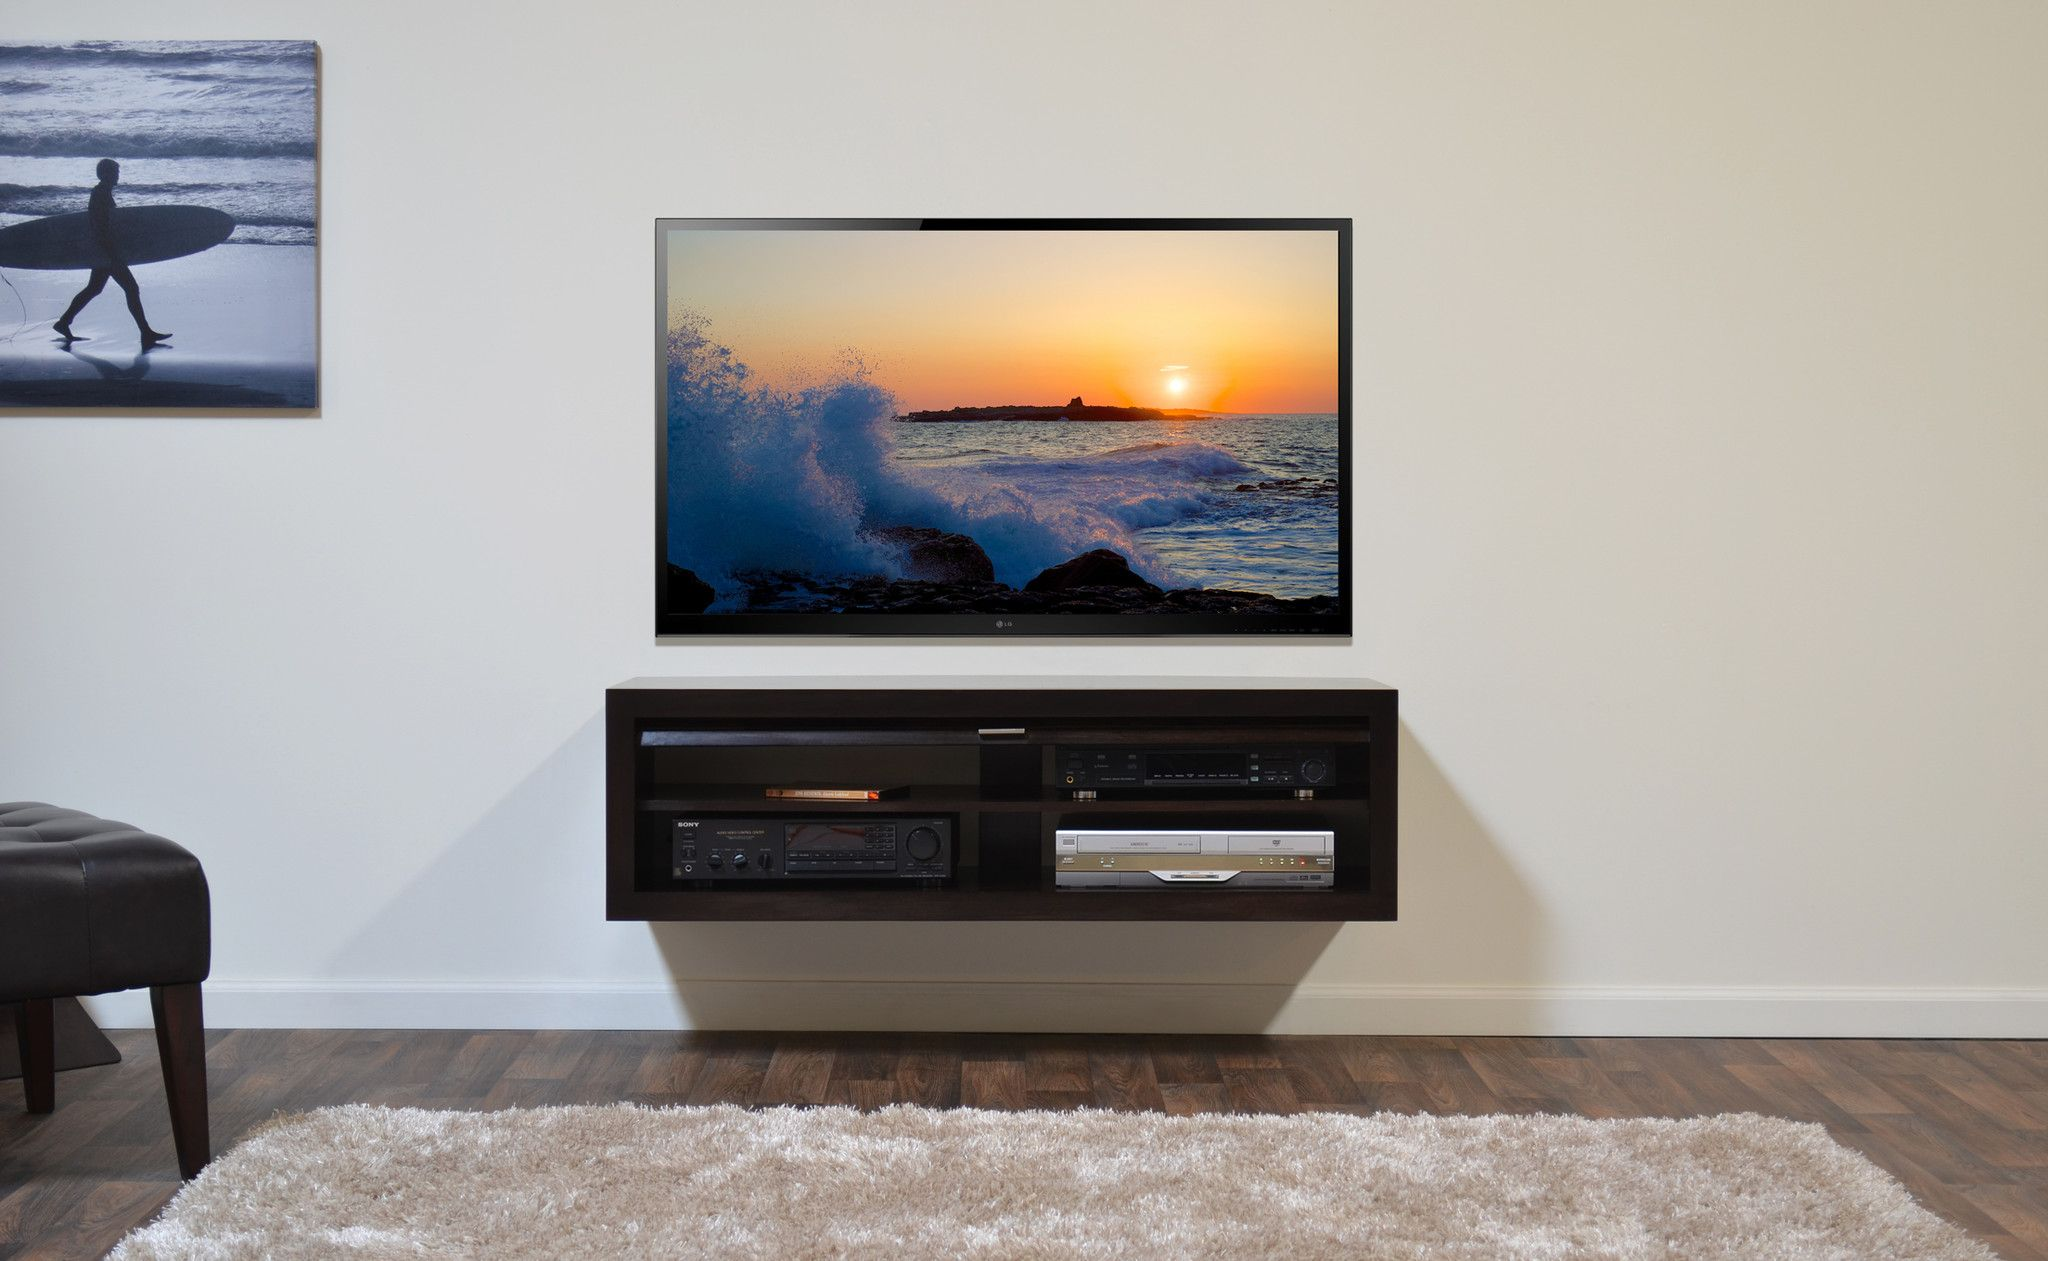 35 Best DIY TV Stand Ideas For